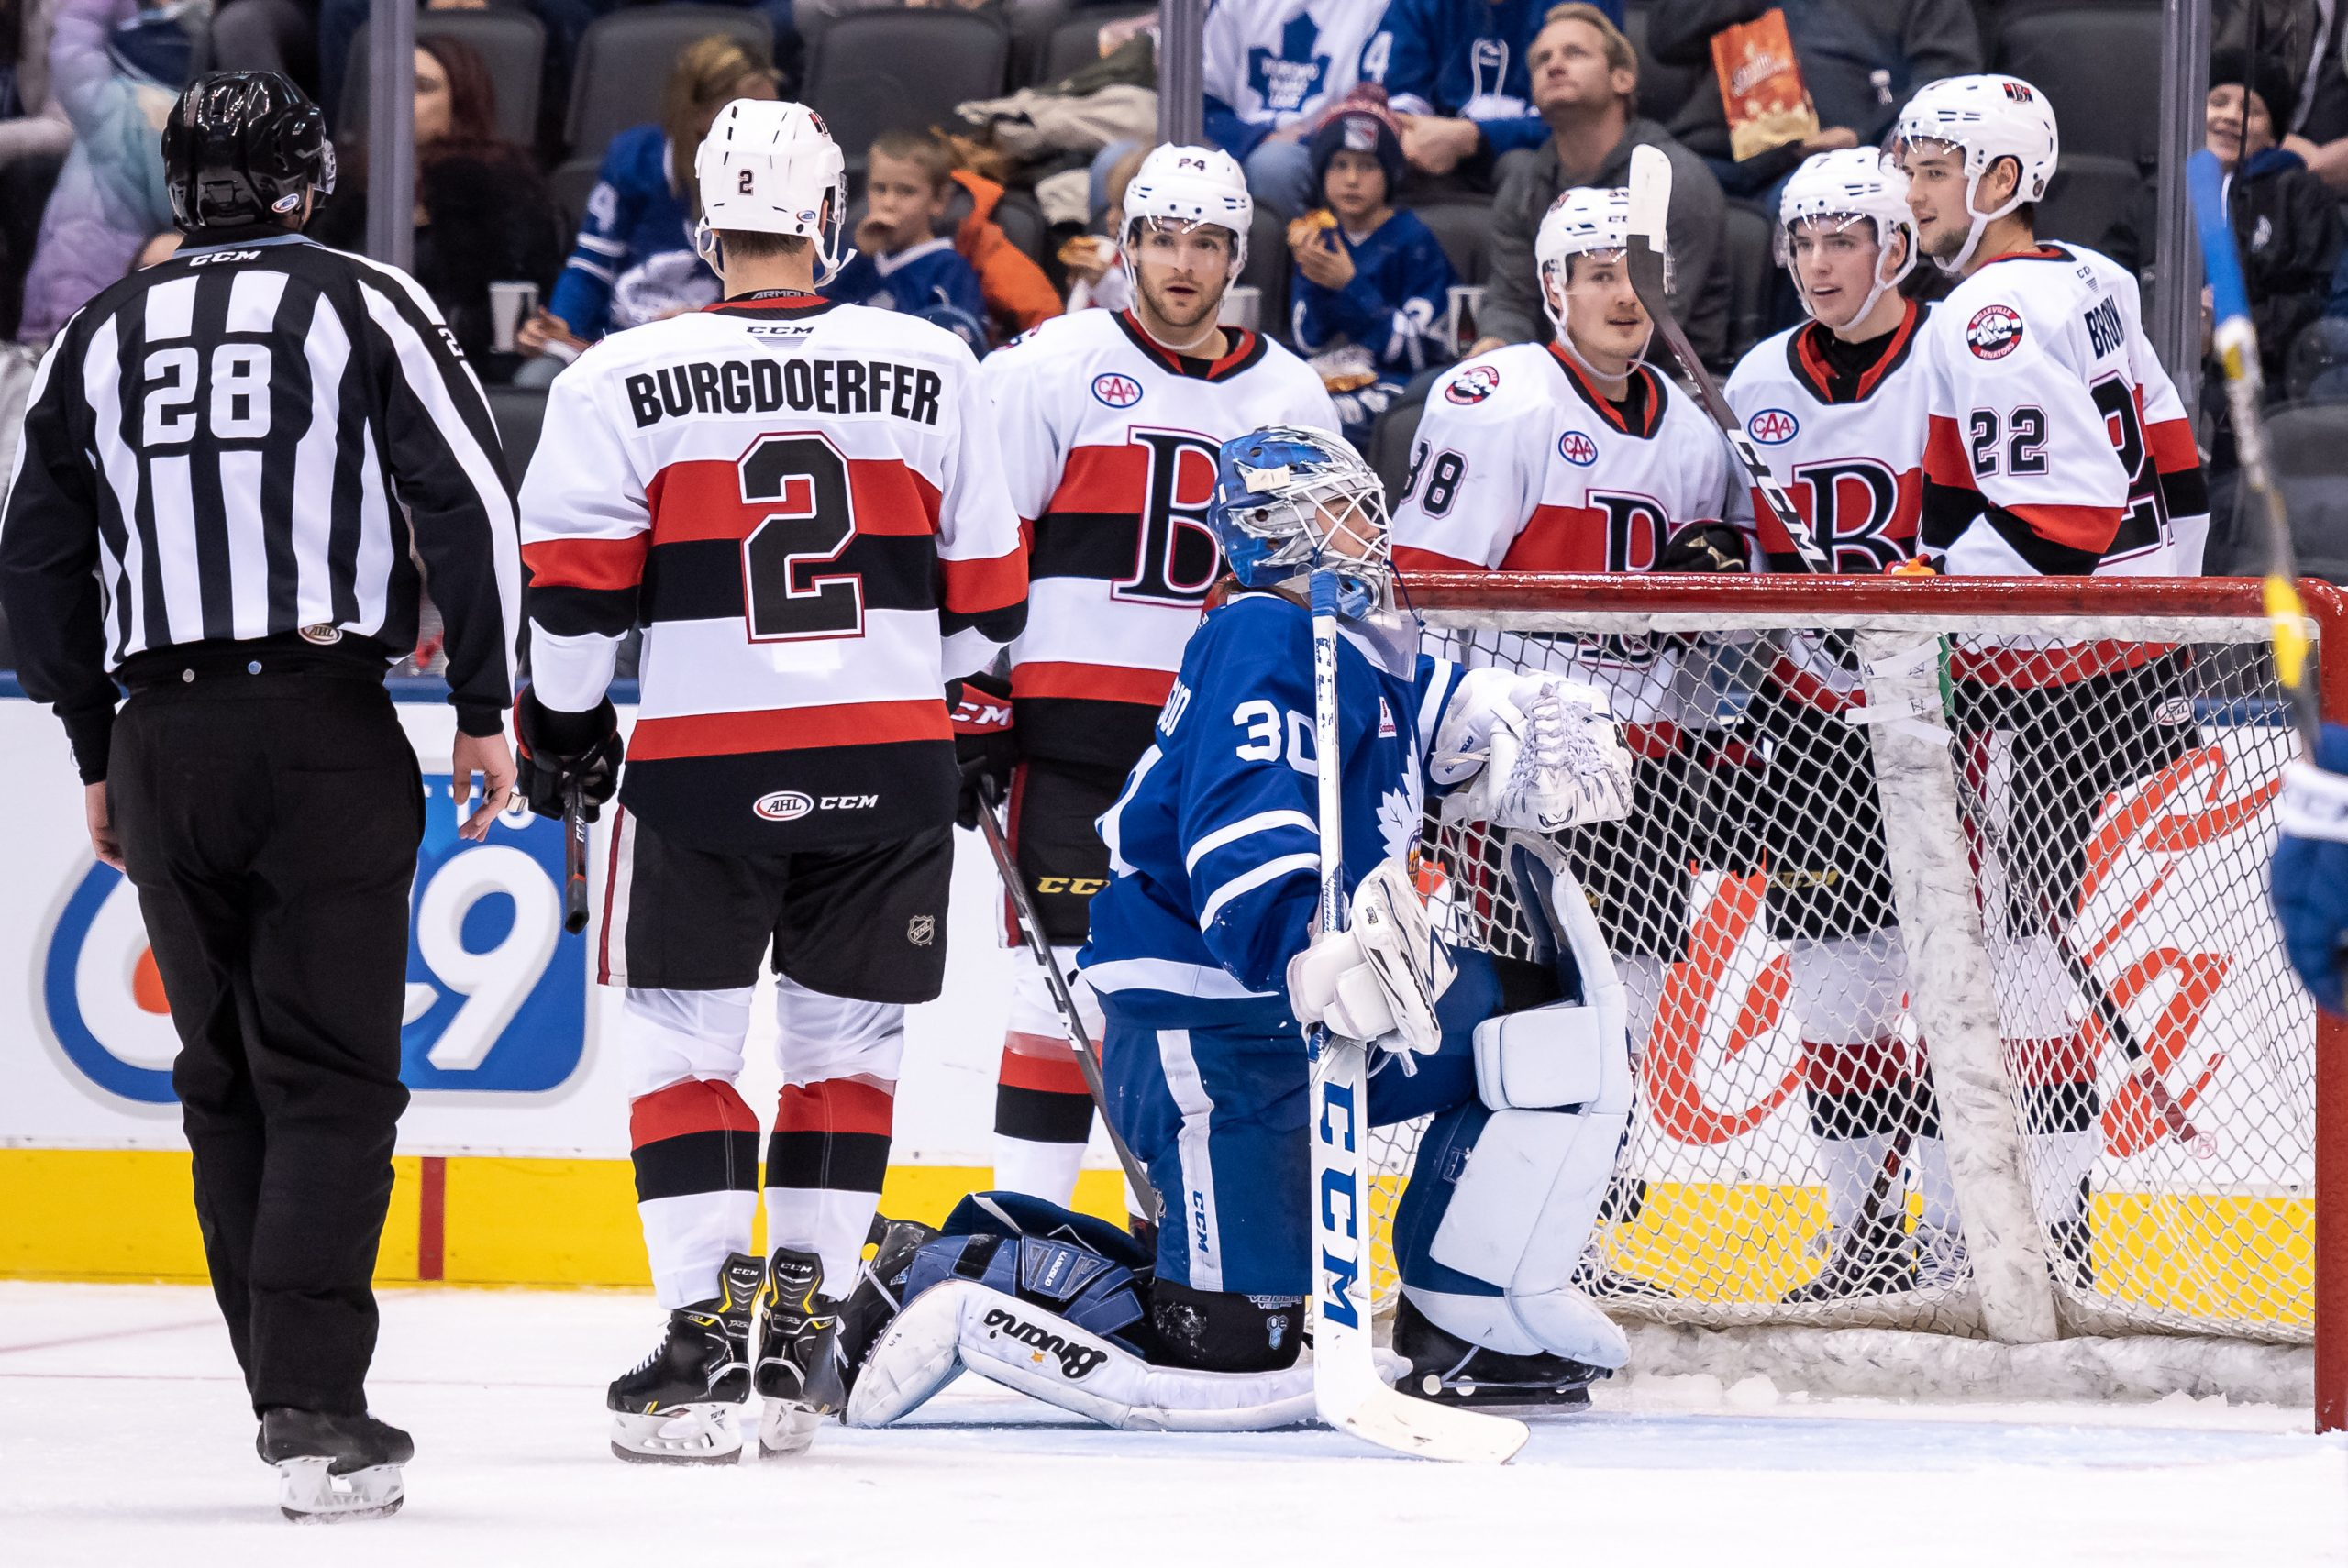 B-Sens best Marlies in Boxing Day Classic